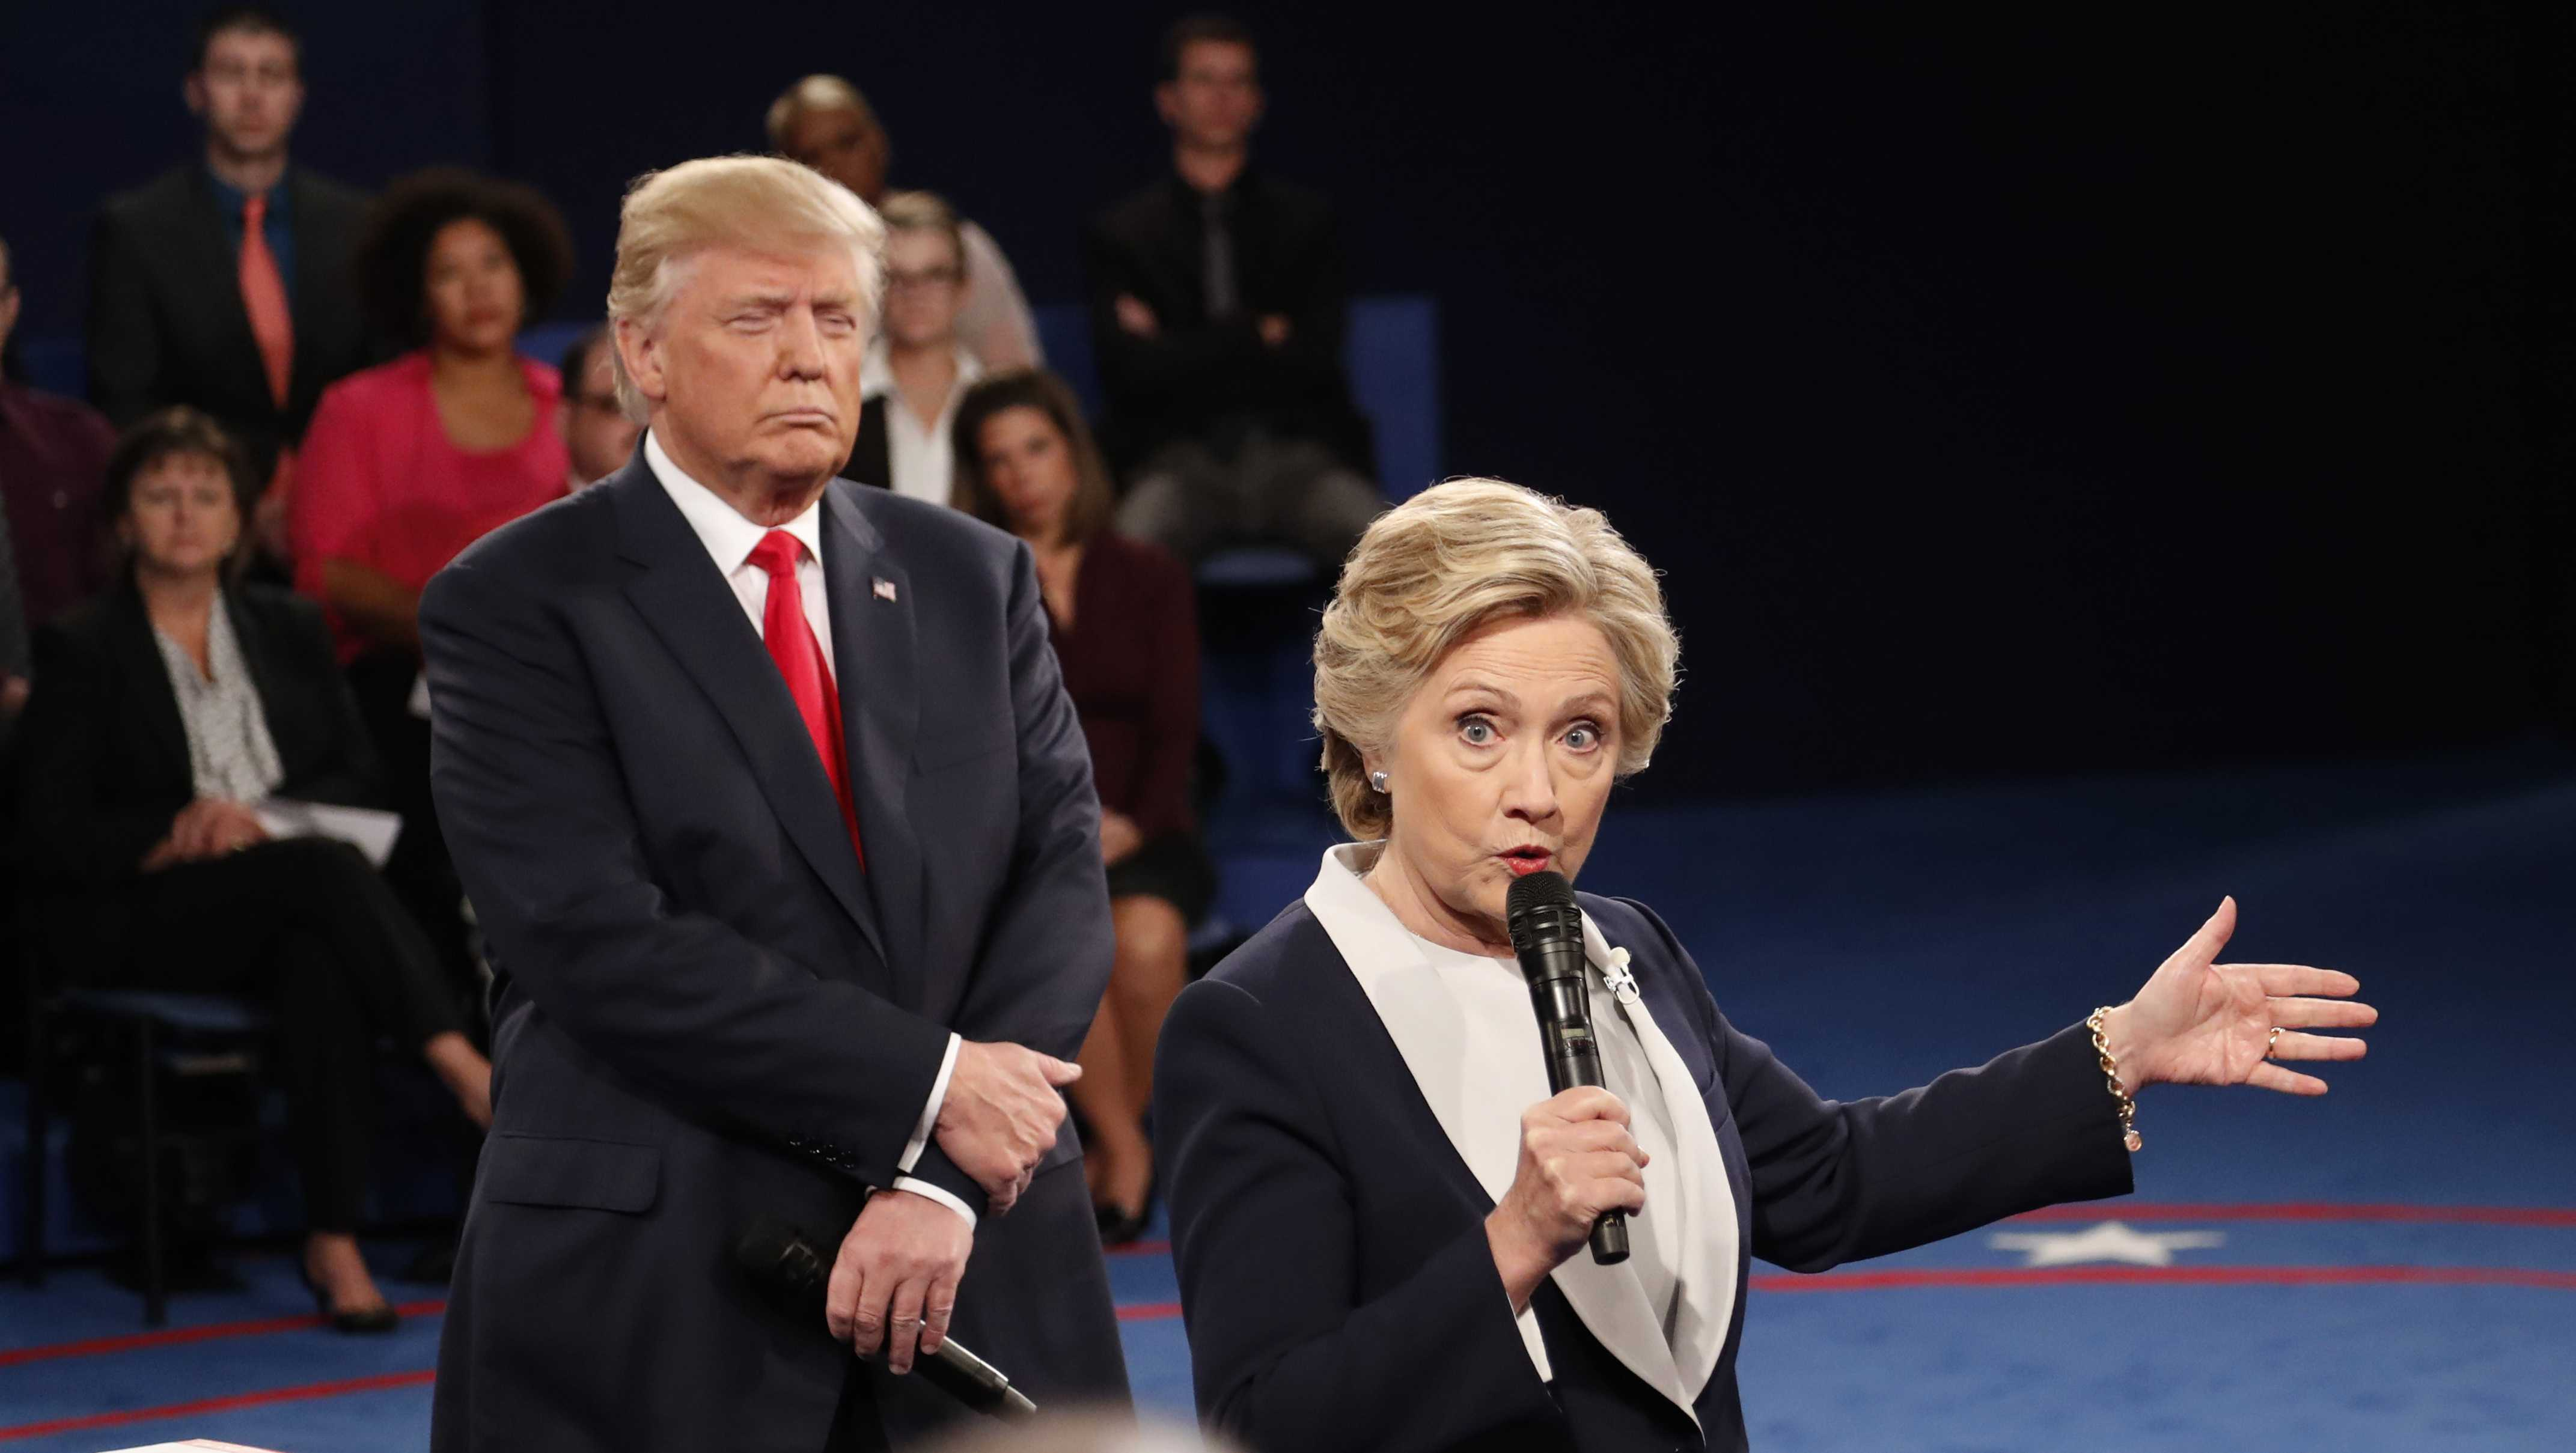 Then-Democratic presidential nominee Hillary Clinton speaks as then-Republican presidential nominee Donald Trump listens during the second presidential debate at Washington University in St. Louis, Sunday, Oct. 9, 2016.